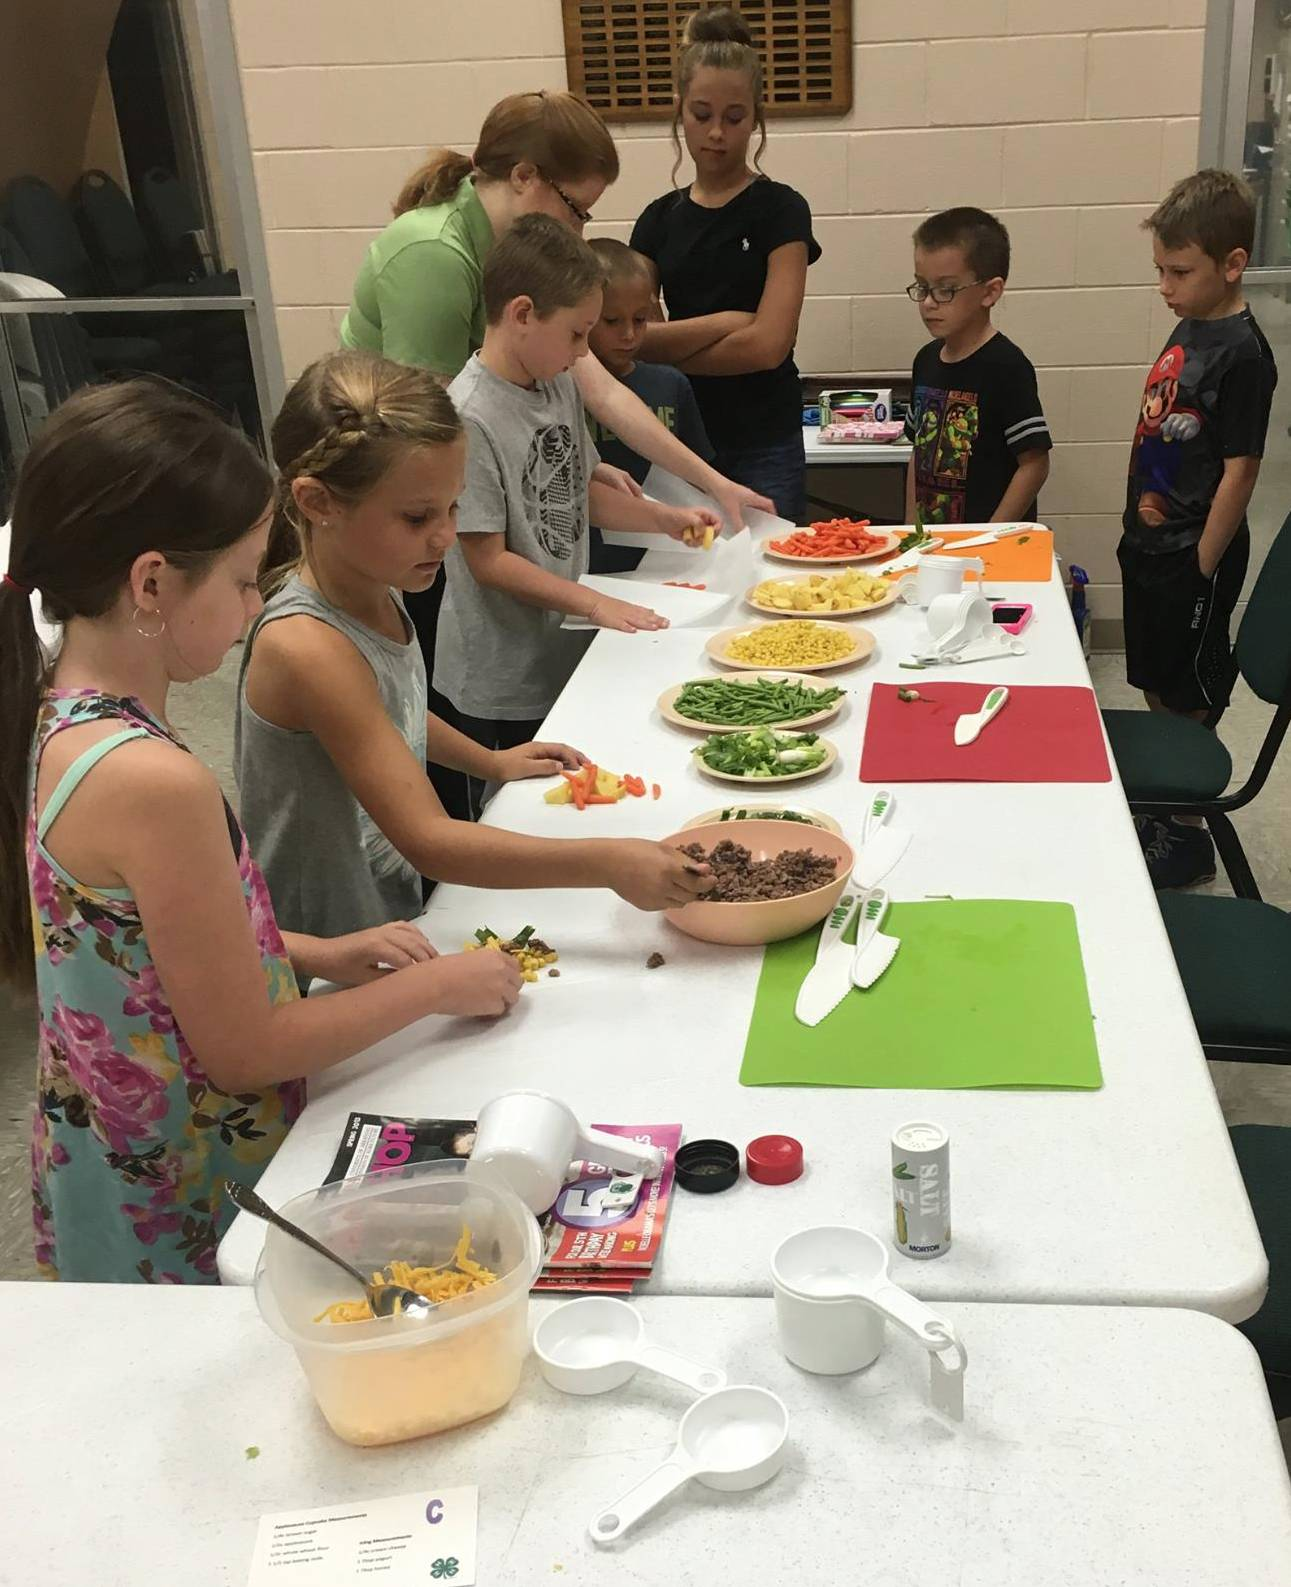 4-H Day Camp attendees learn about vegetables and healthy eating by putting together their own packet meals.